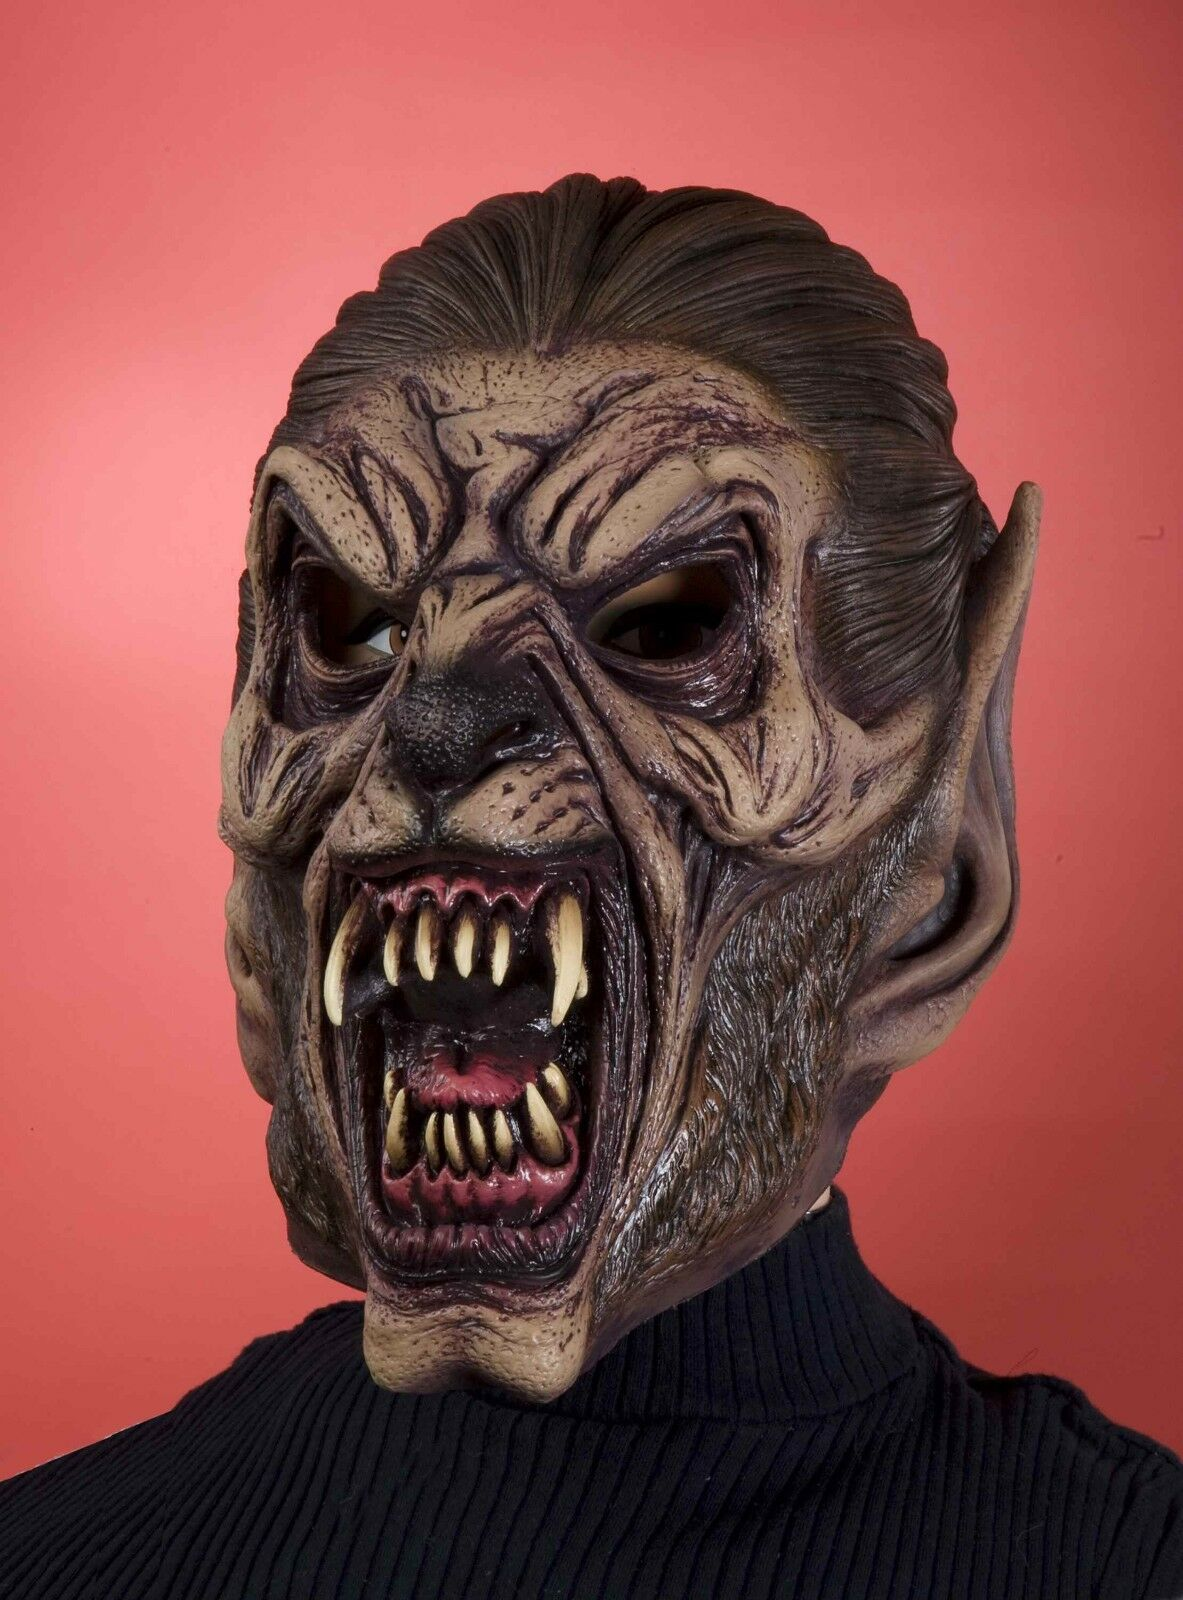 latex werewolf mask mens adult vinyl halloween face were wolf costume brown new 1 of 1only 1 available